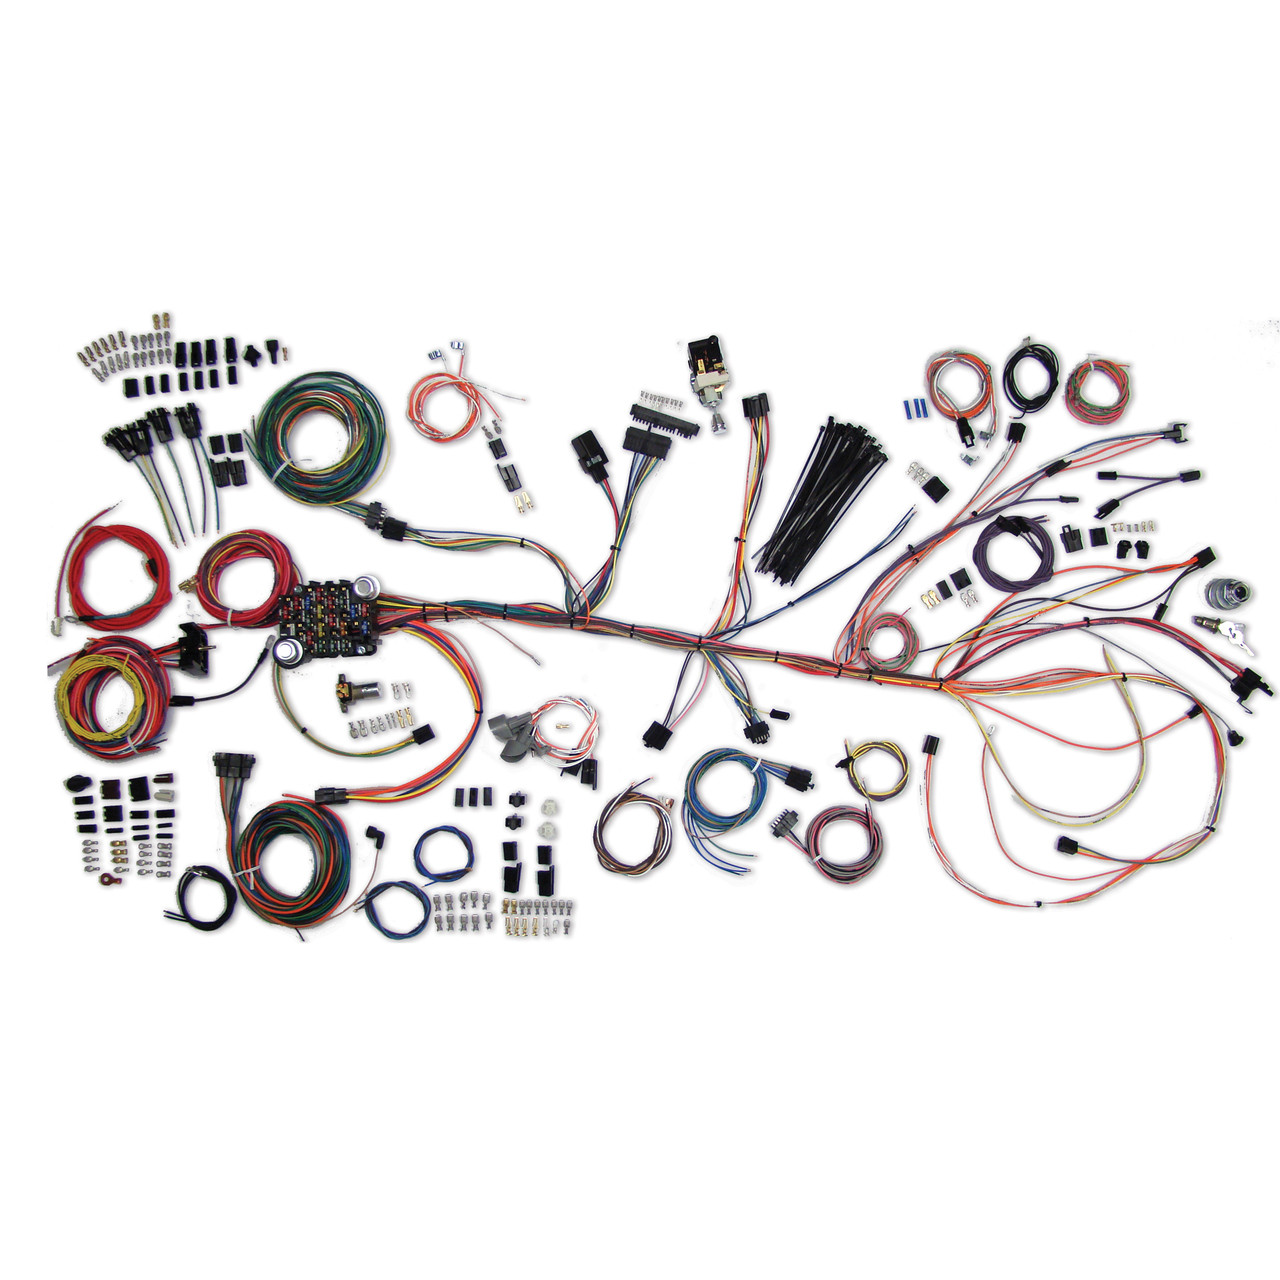 small resolution of american autowire 1964 1967 chevrolet chevelle el camino classic aftermarket wiring kits american autowire toggle turn signal switch